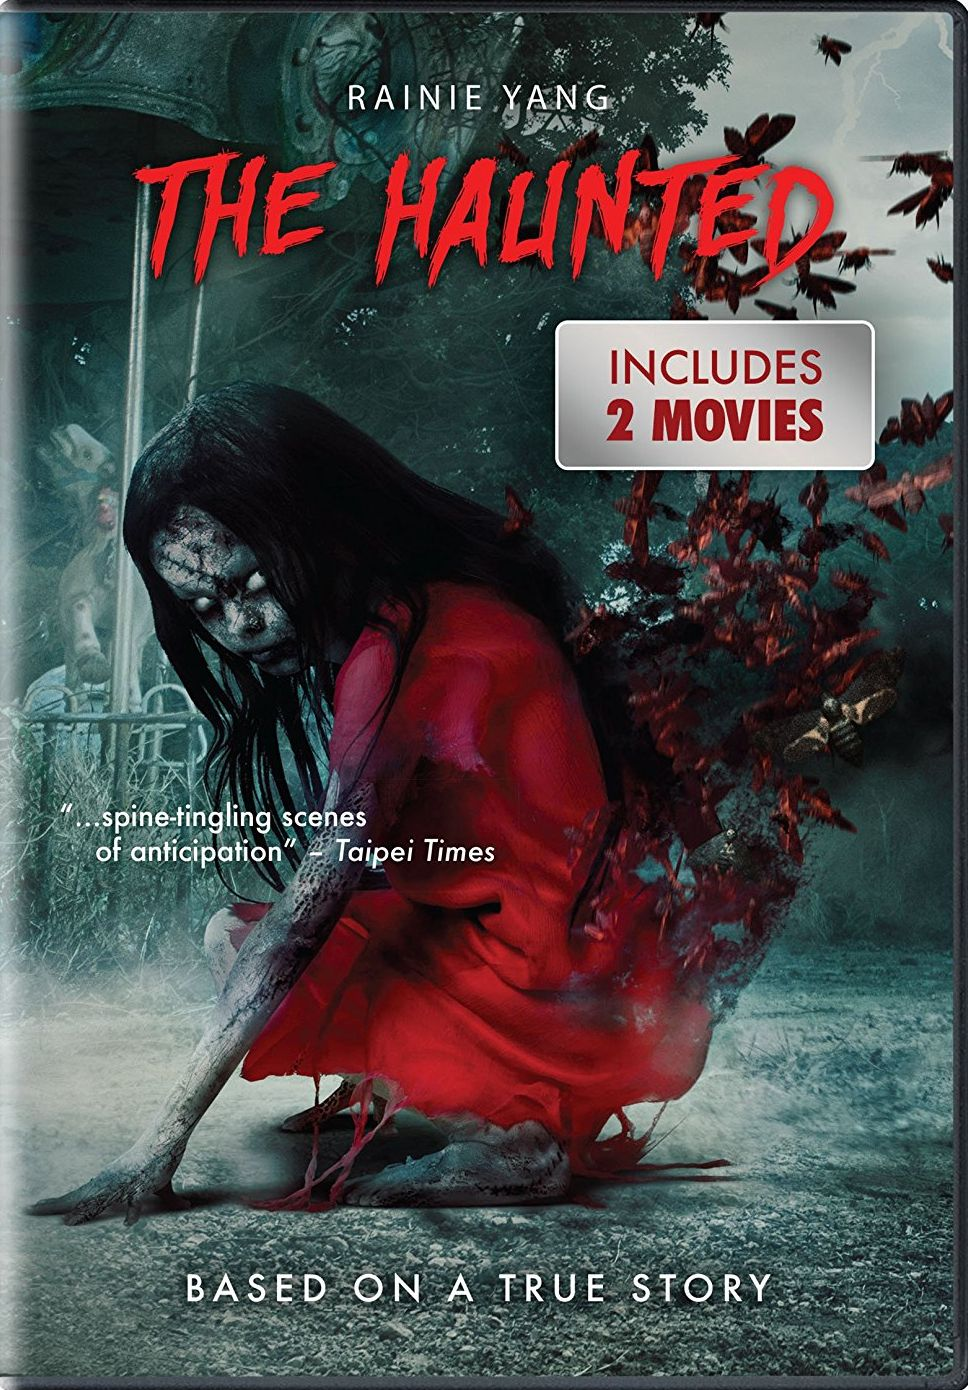 THE HAUNTED DVD (CINEDIGM) Top horror movies